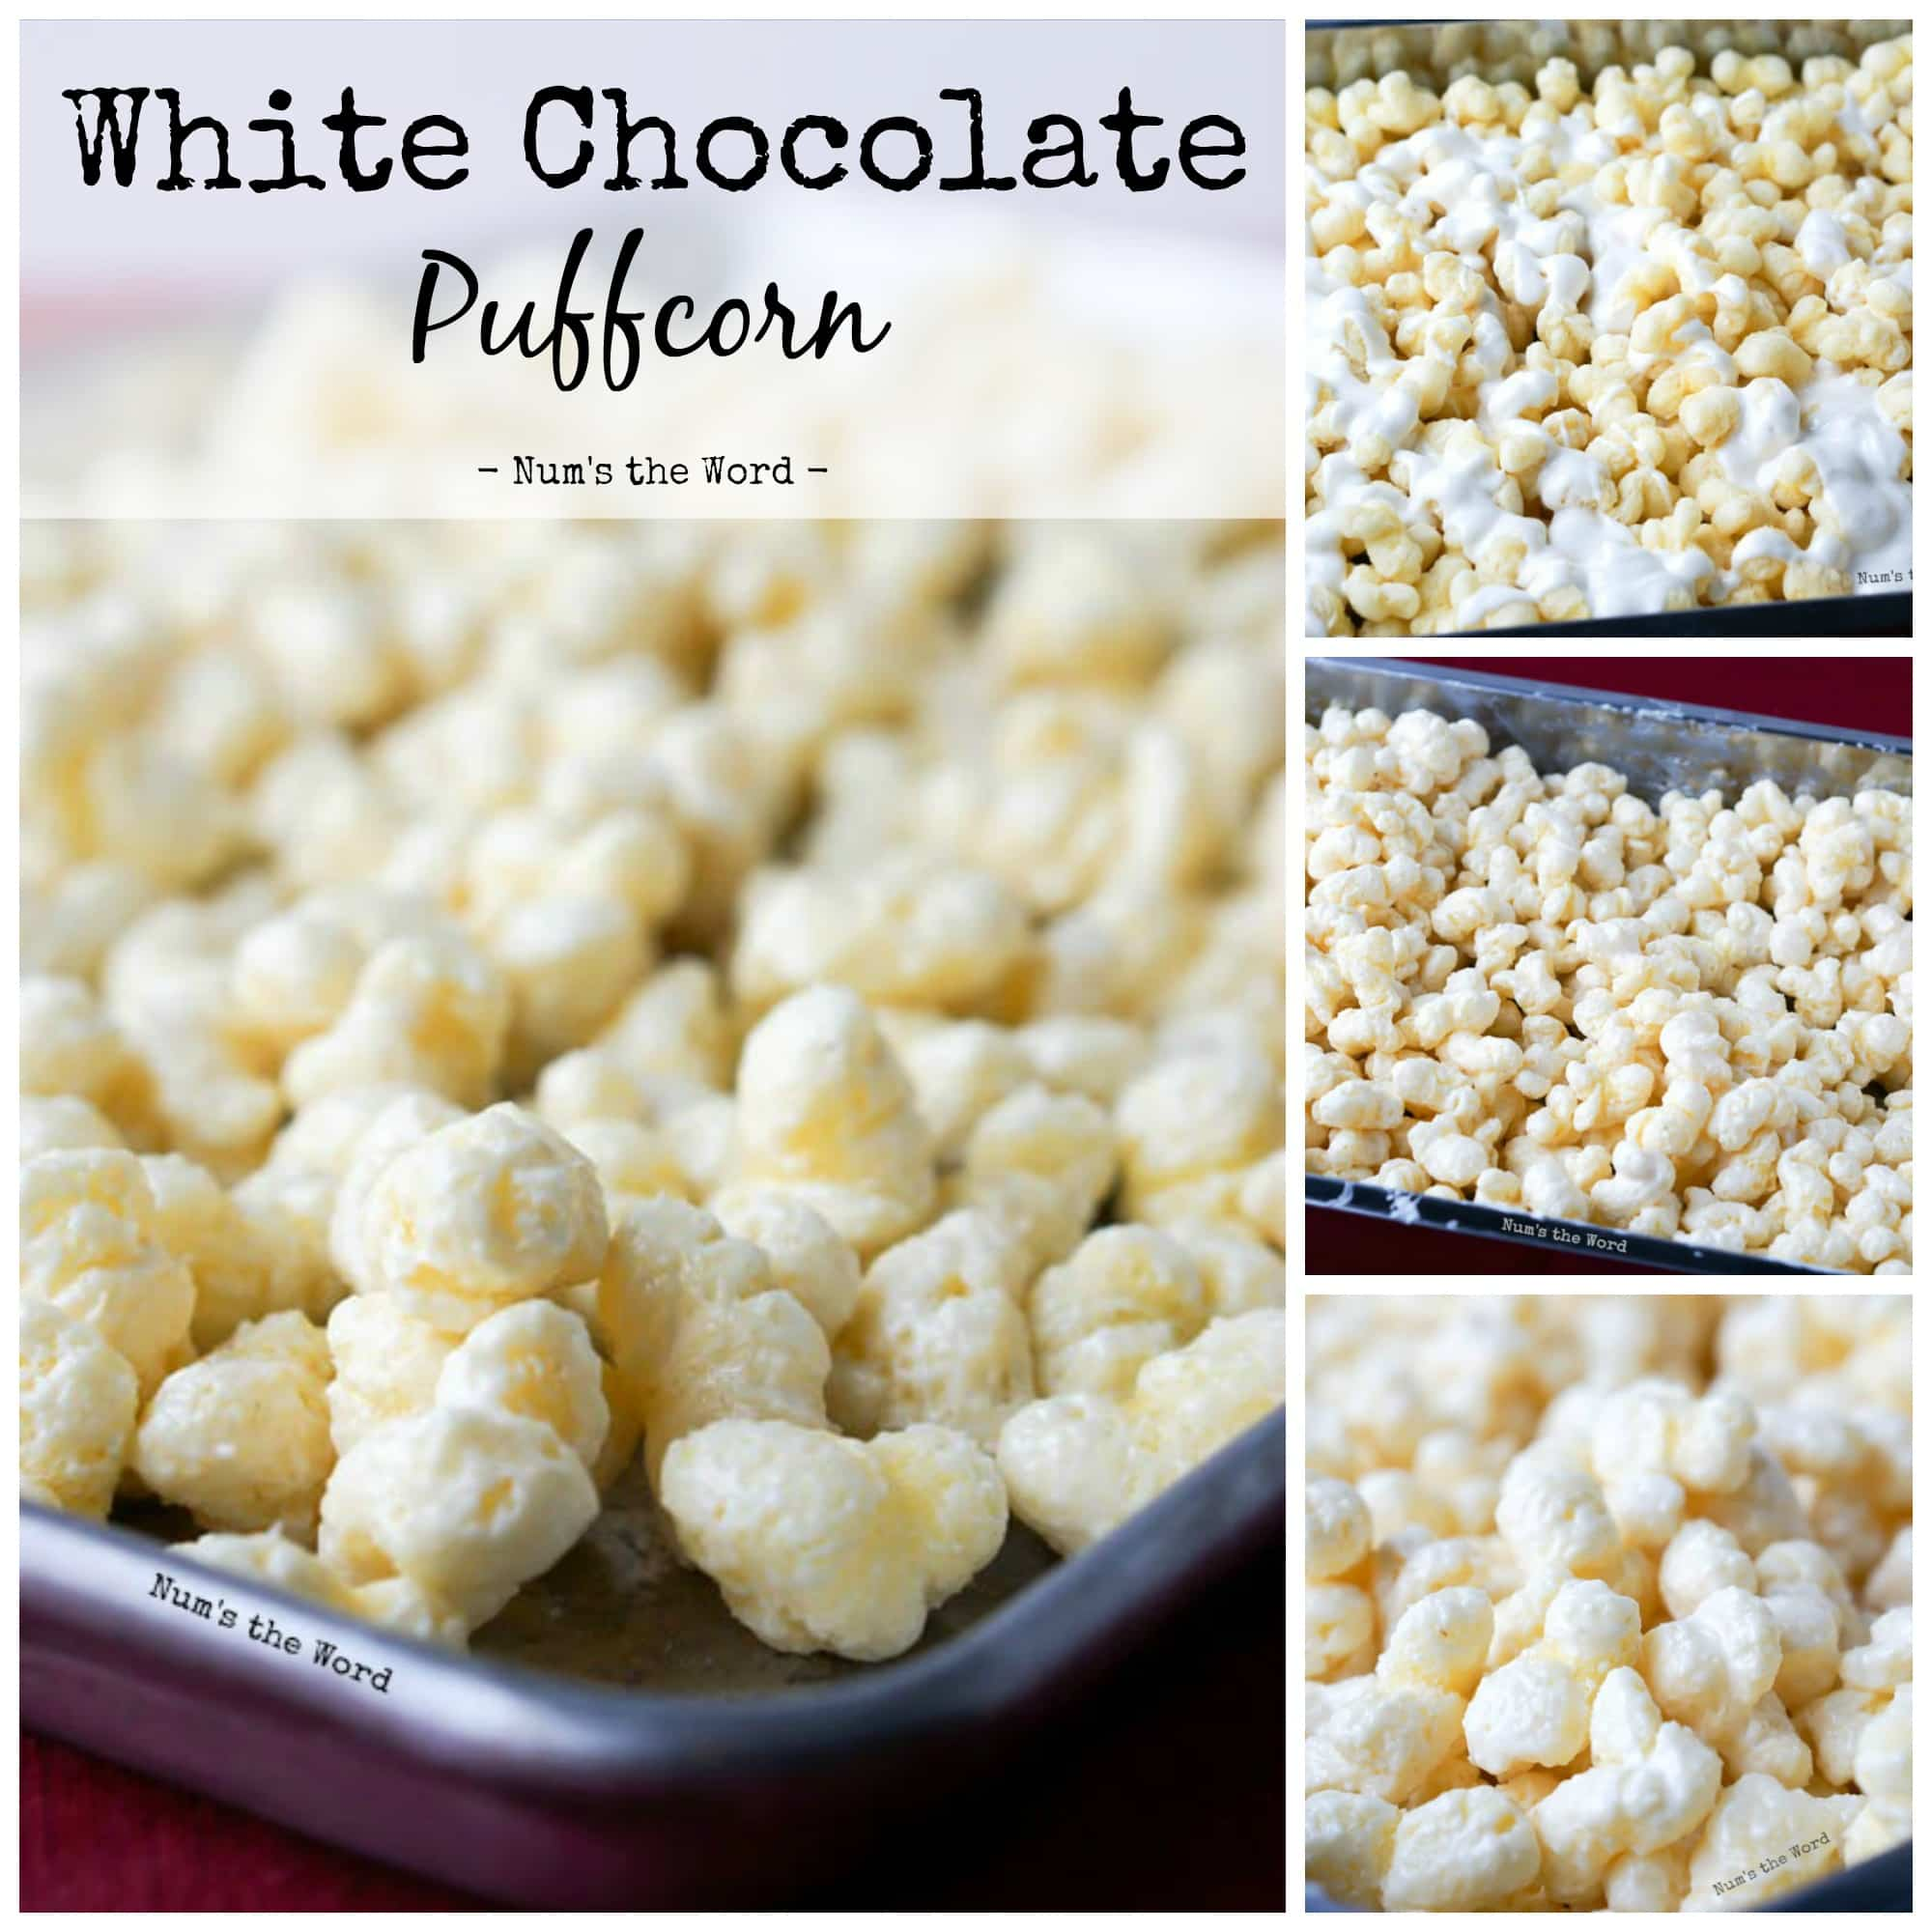 White Chocolate Puffcorn - Collage of images for Facebook